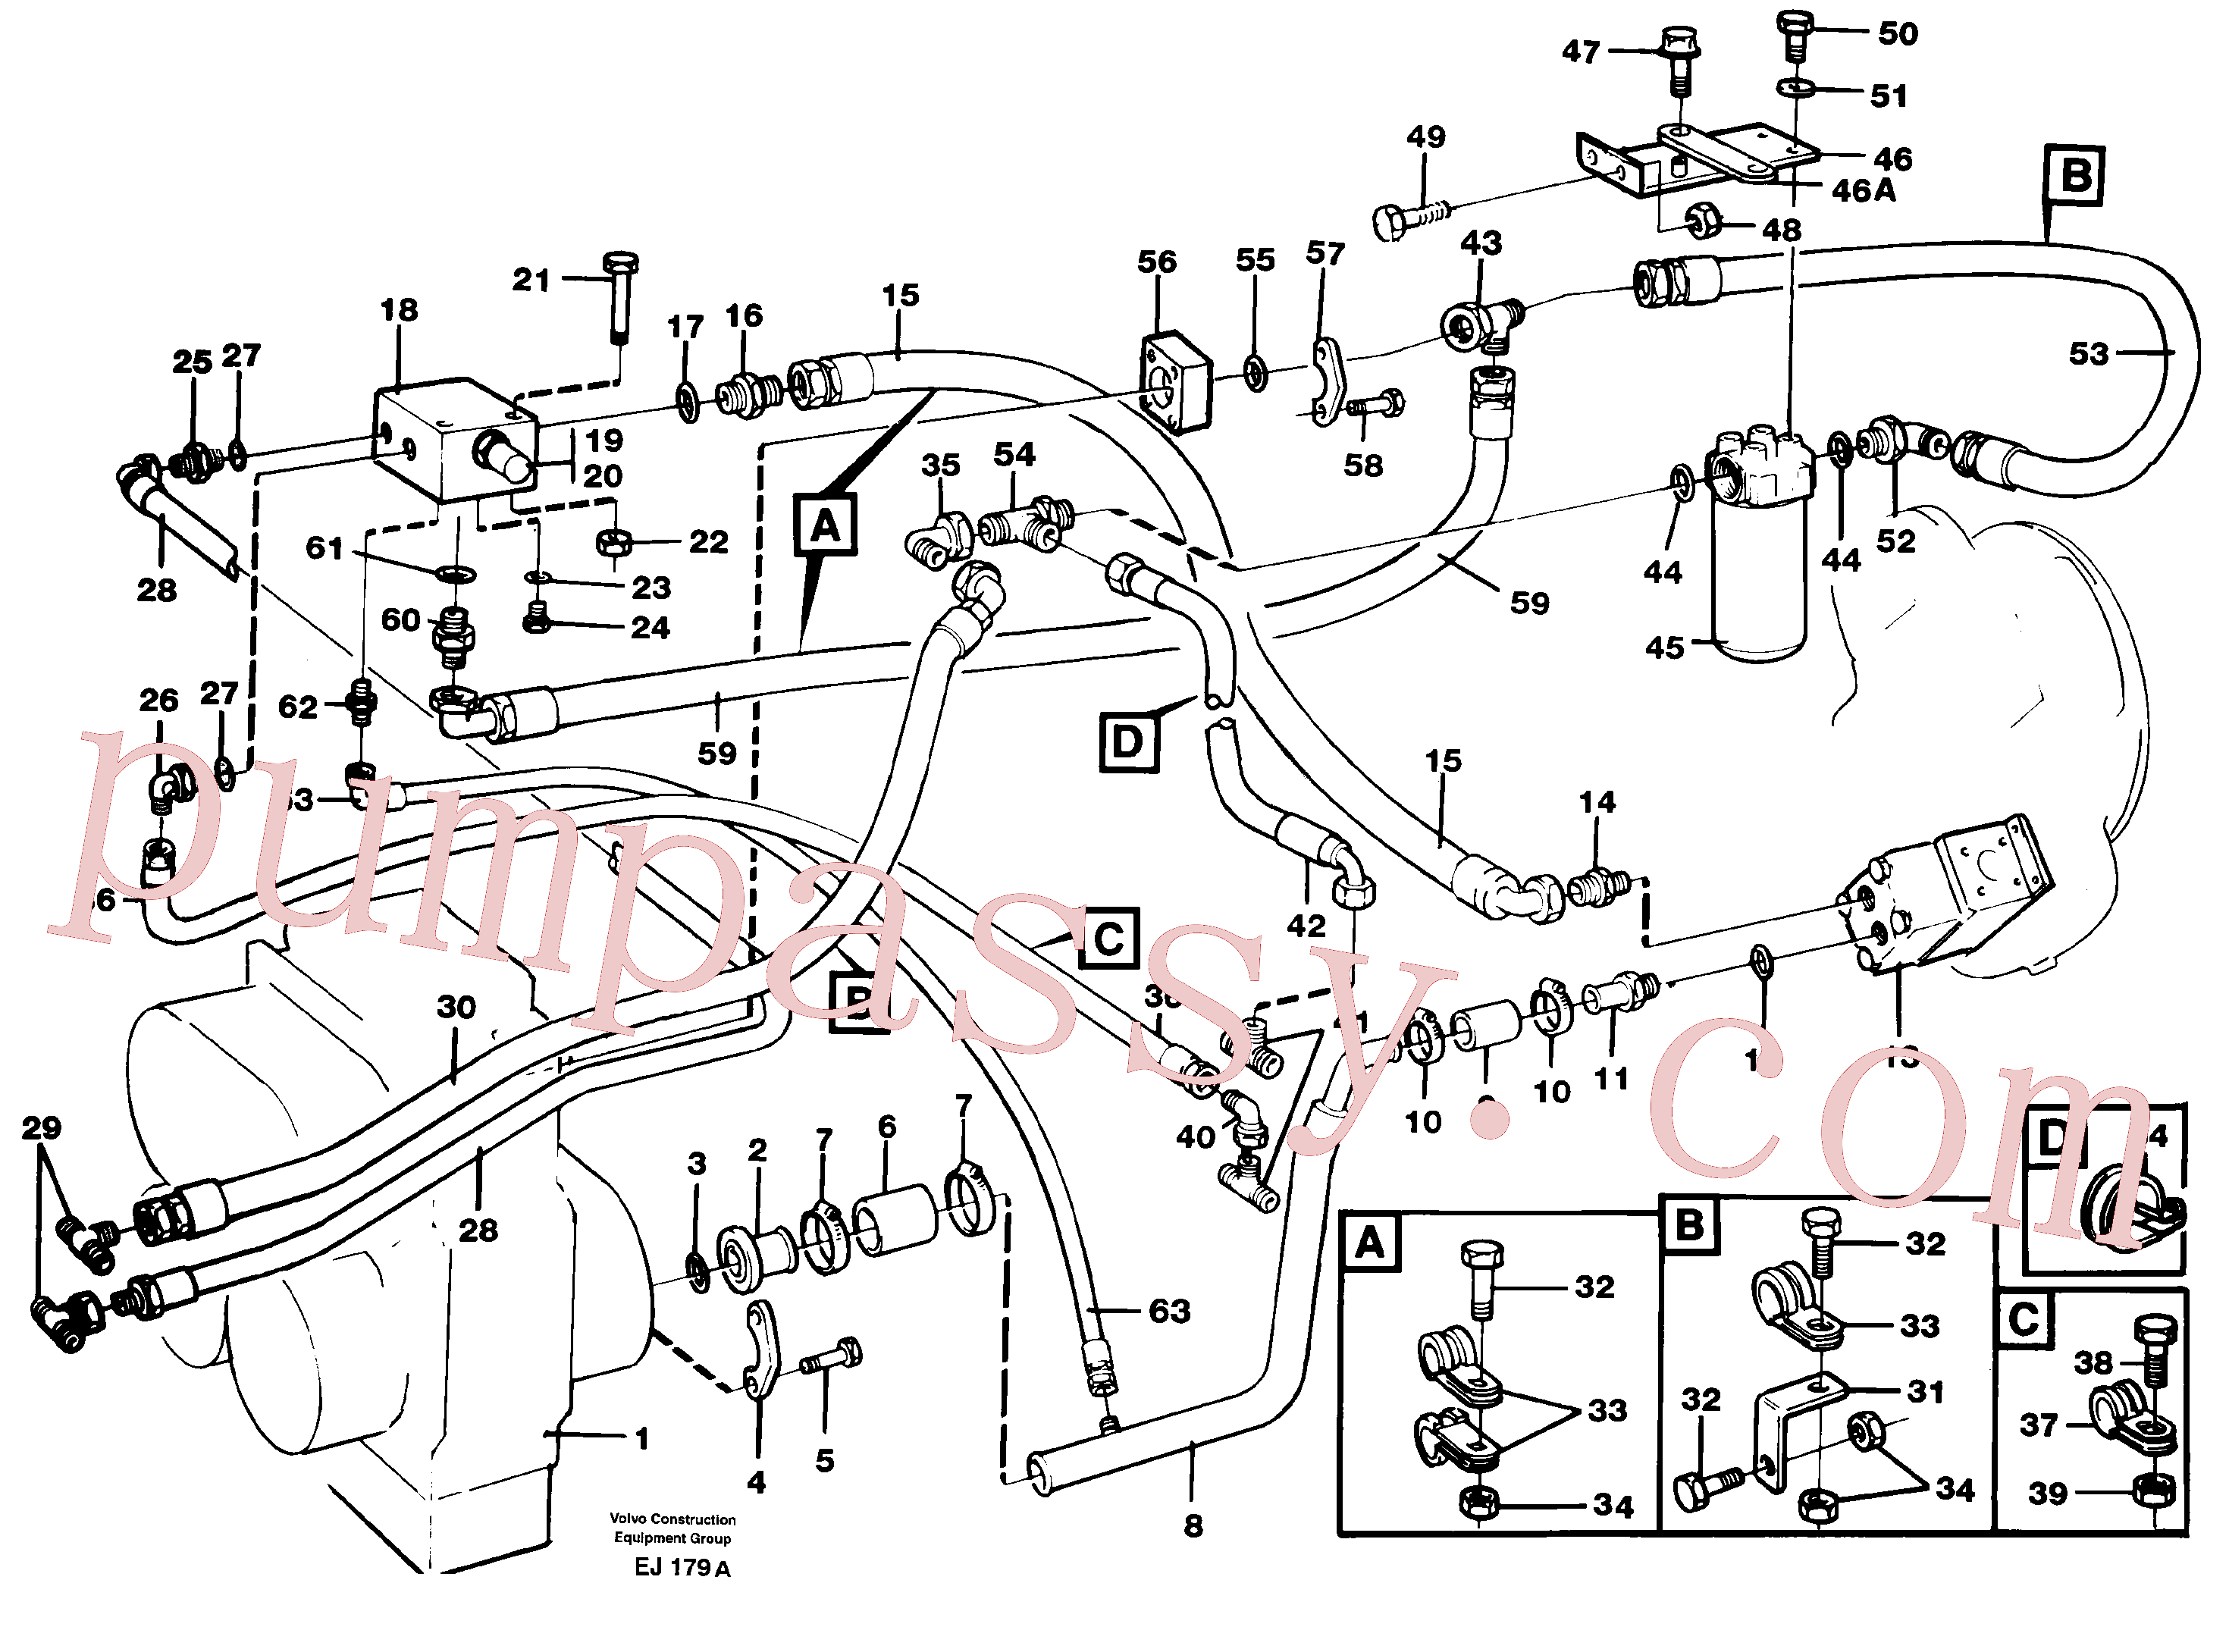 RM59923003 for Volvo Brake cooling system(EJ179A assembly)